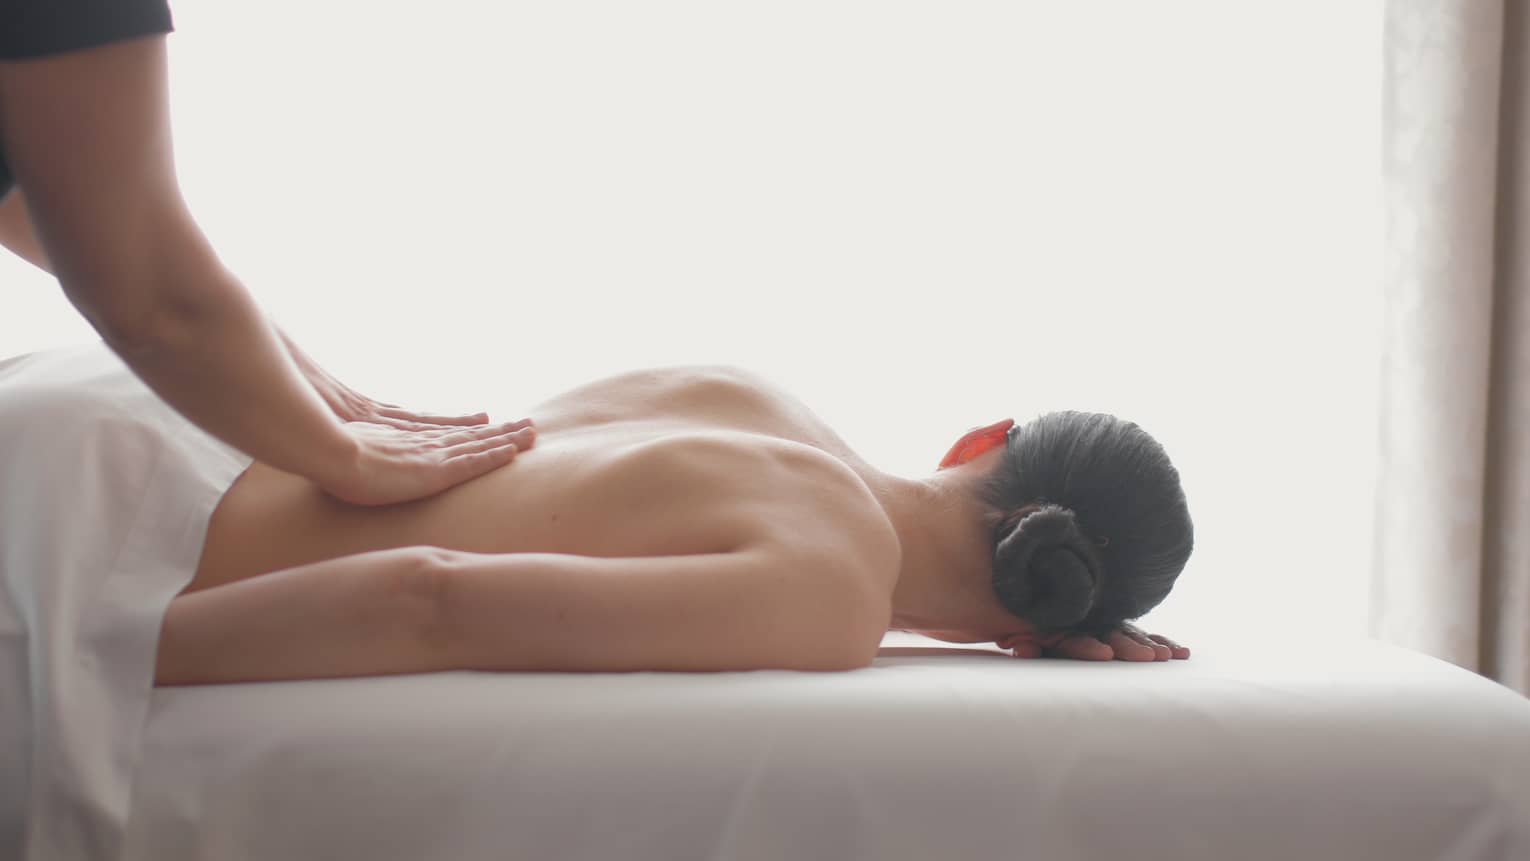 Side view of woman lying on massage table, hands massaging her bare shoulders